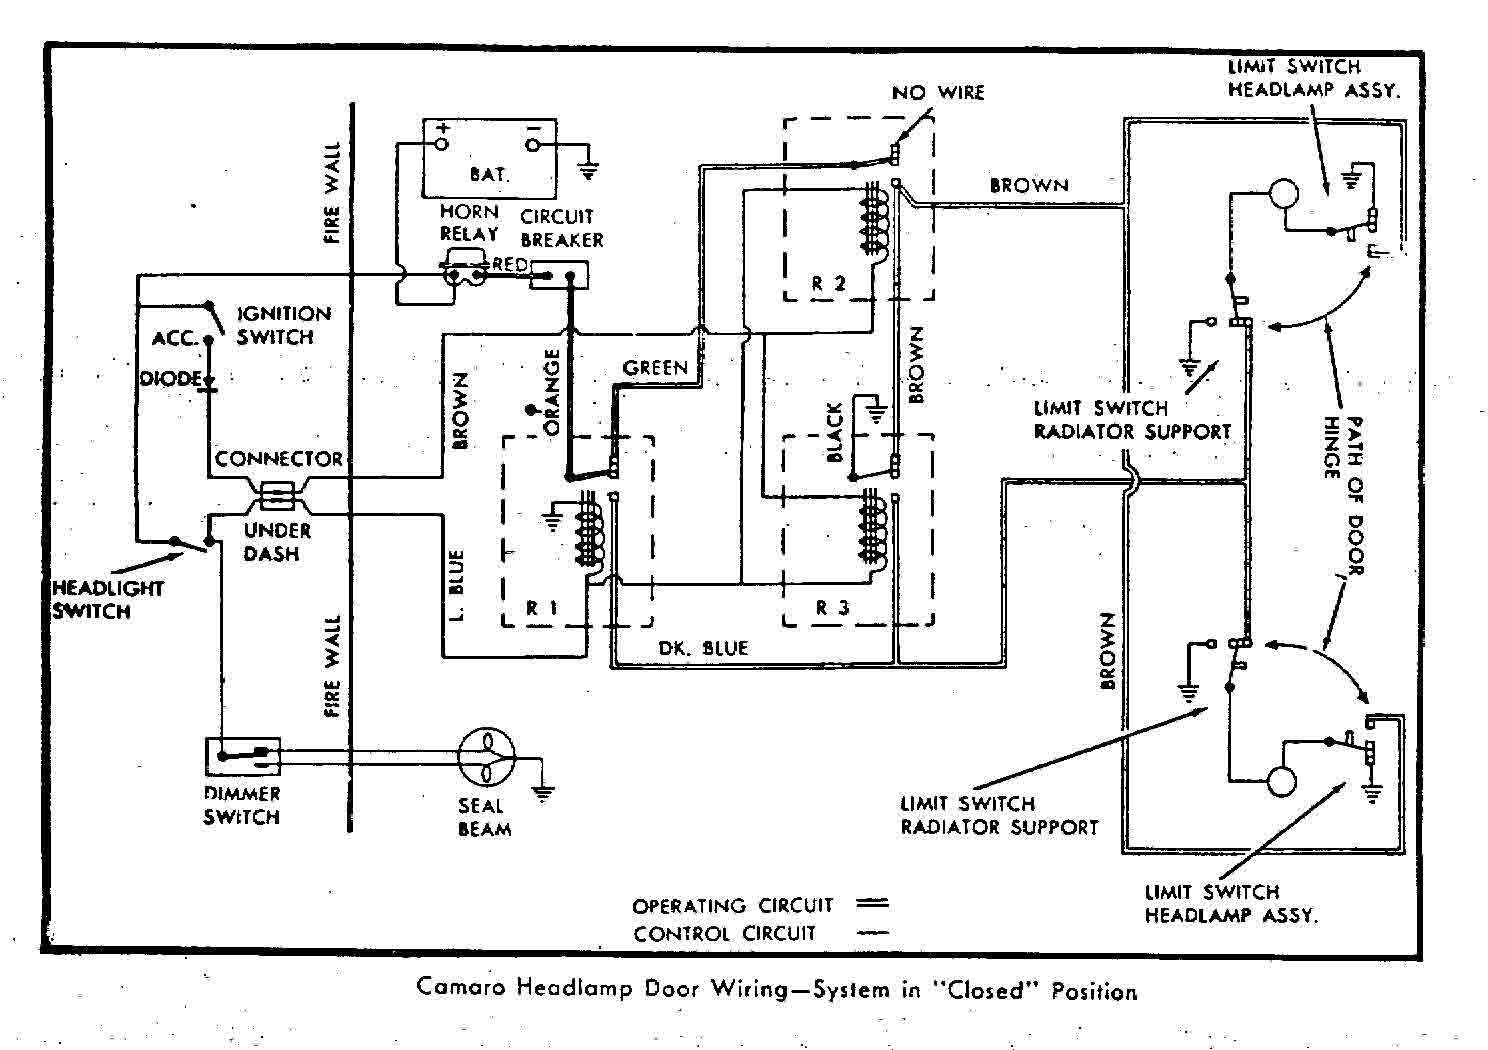 67 camaro wiring diagram 67 camaro wiper motor wiring diagram rh hg4 co 1970 Chevy Camaro 1969 Camaro Wiring Harness Diagram